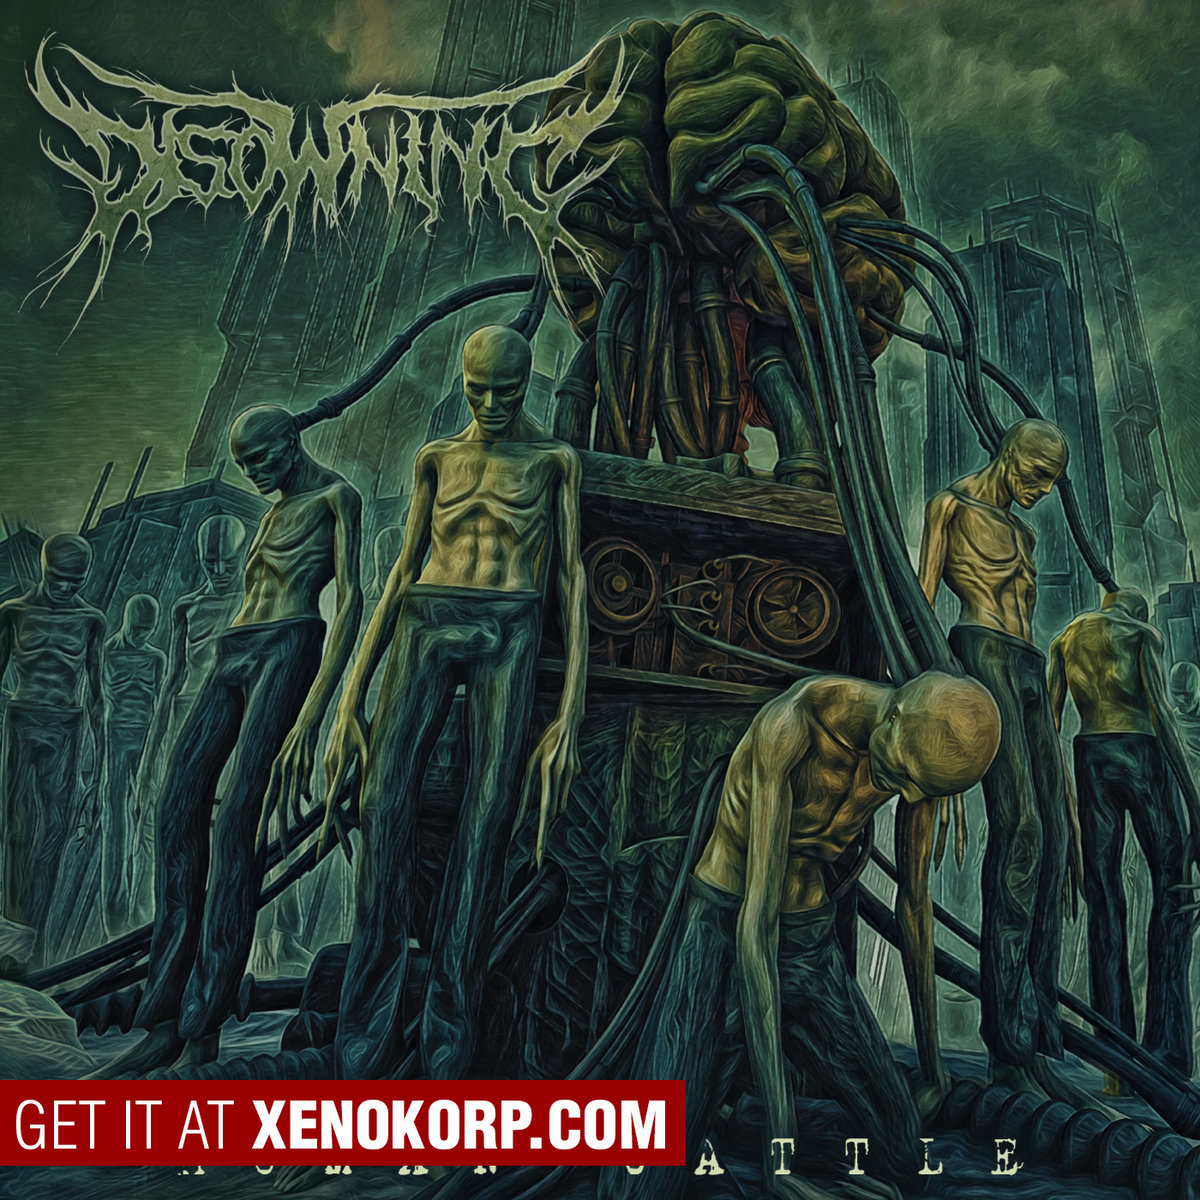 disowning human cattle death metal le scribe du rock